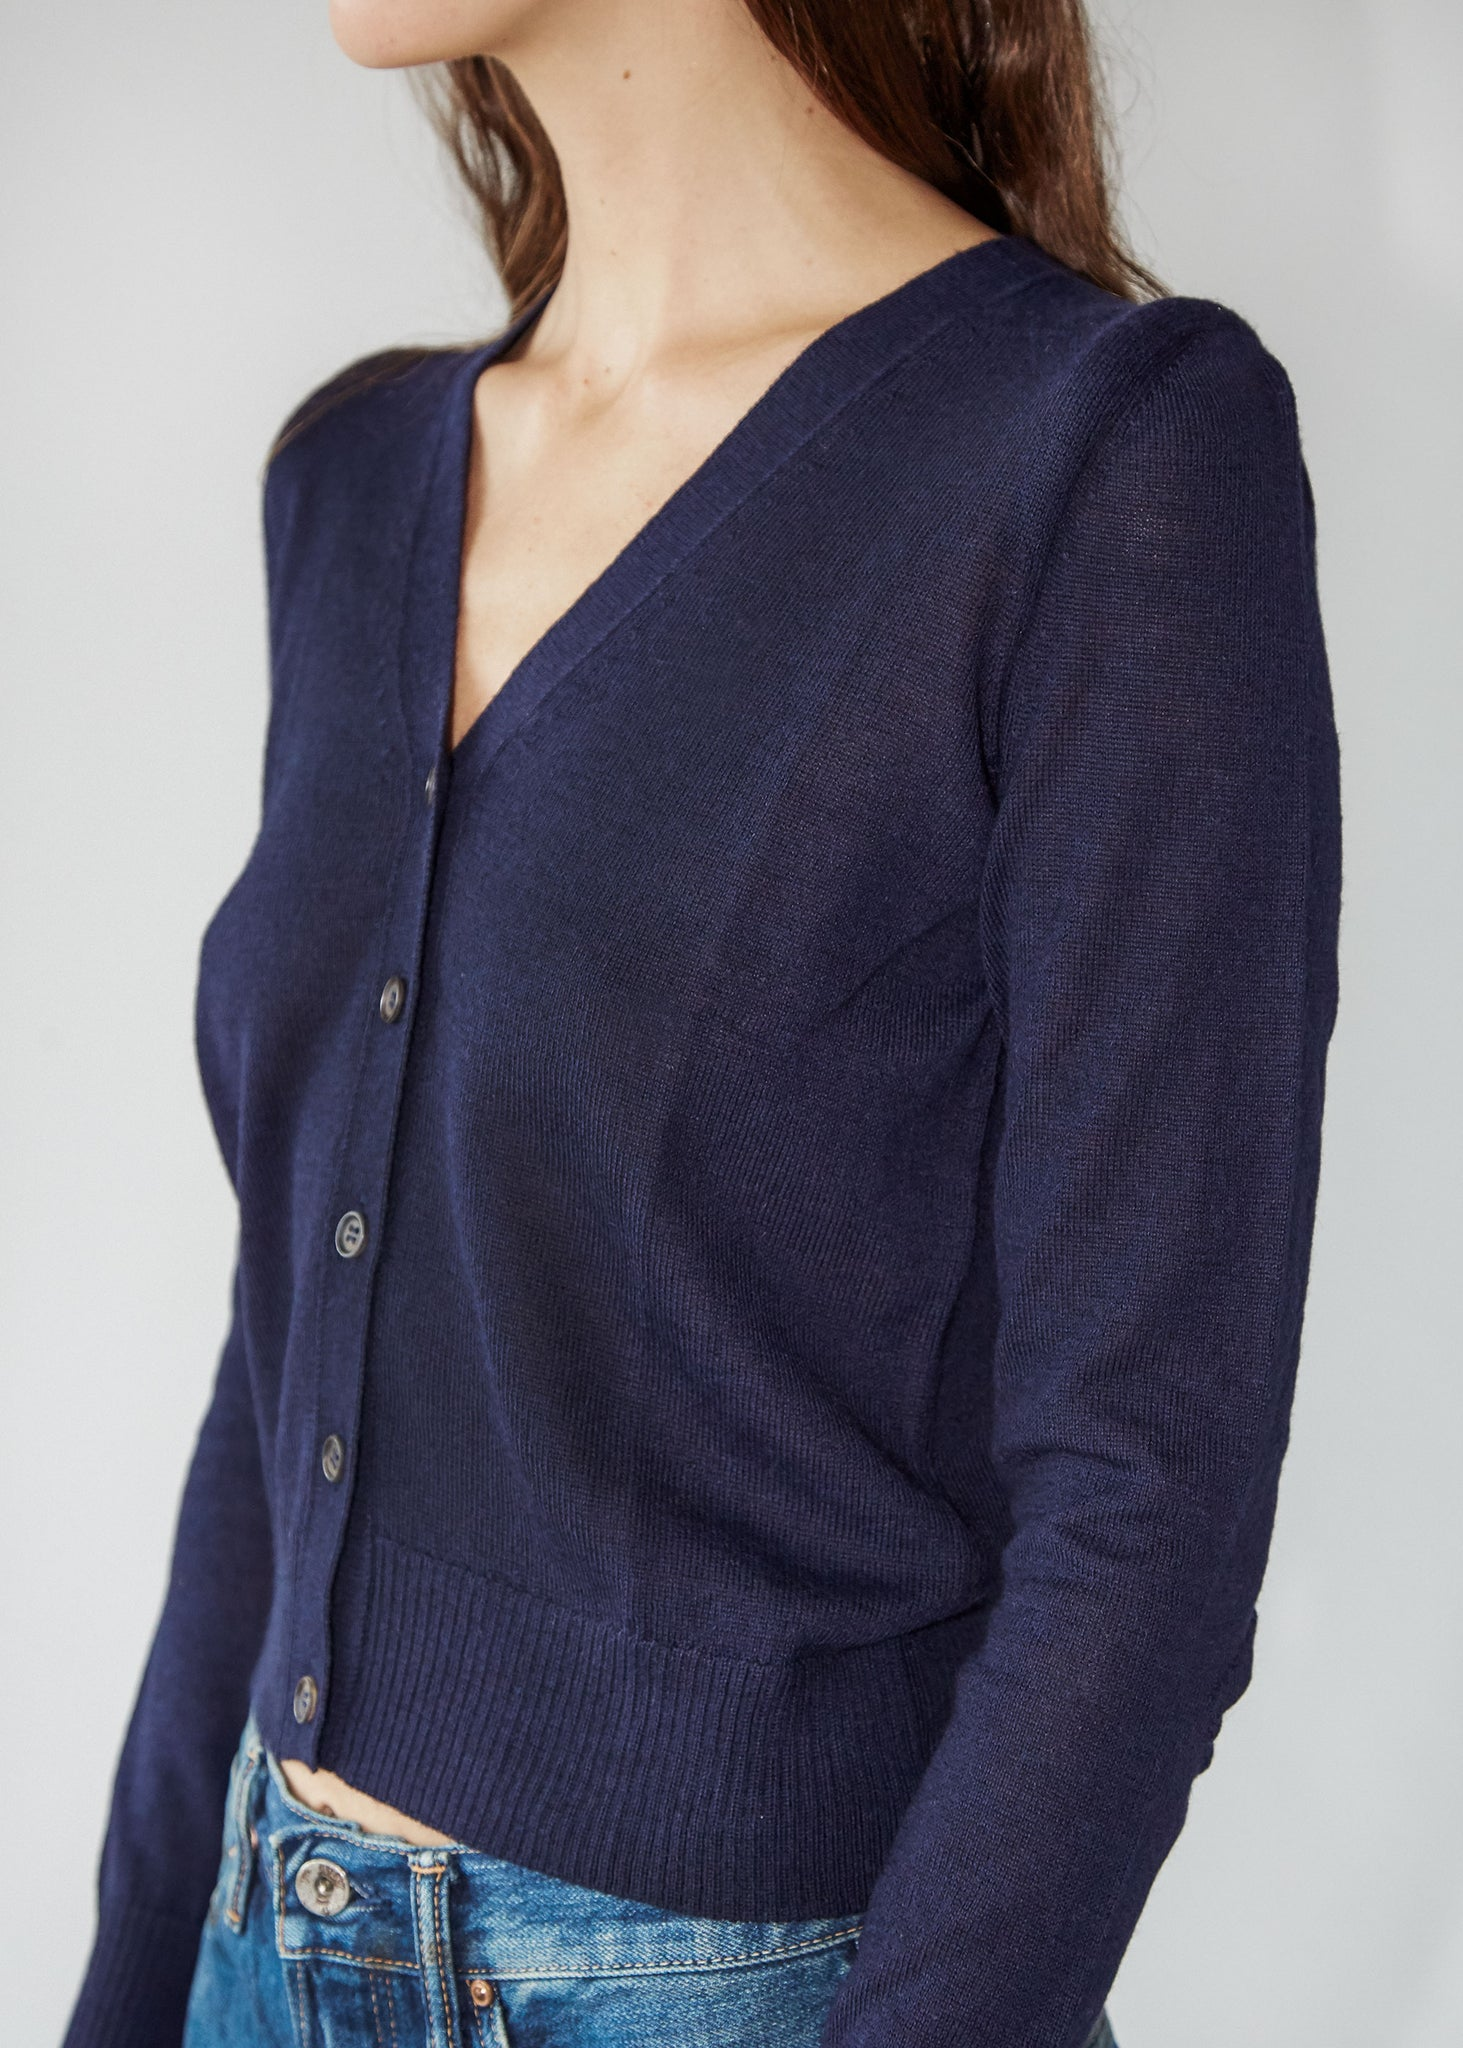 Coby Cardigan in Navy - SOLD OUT